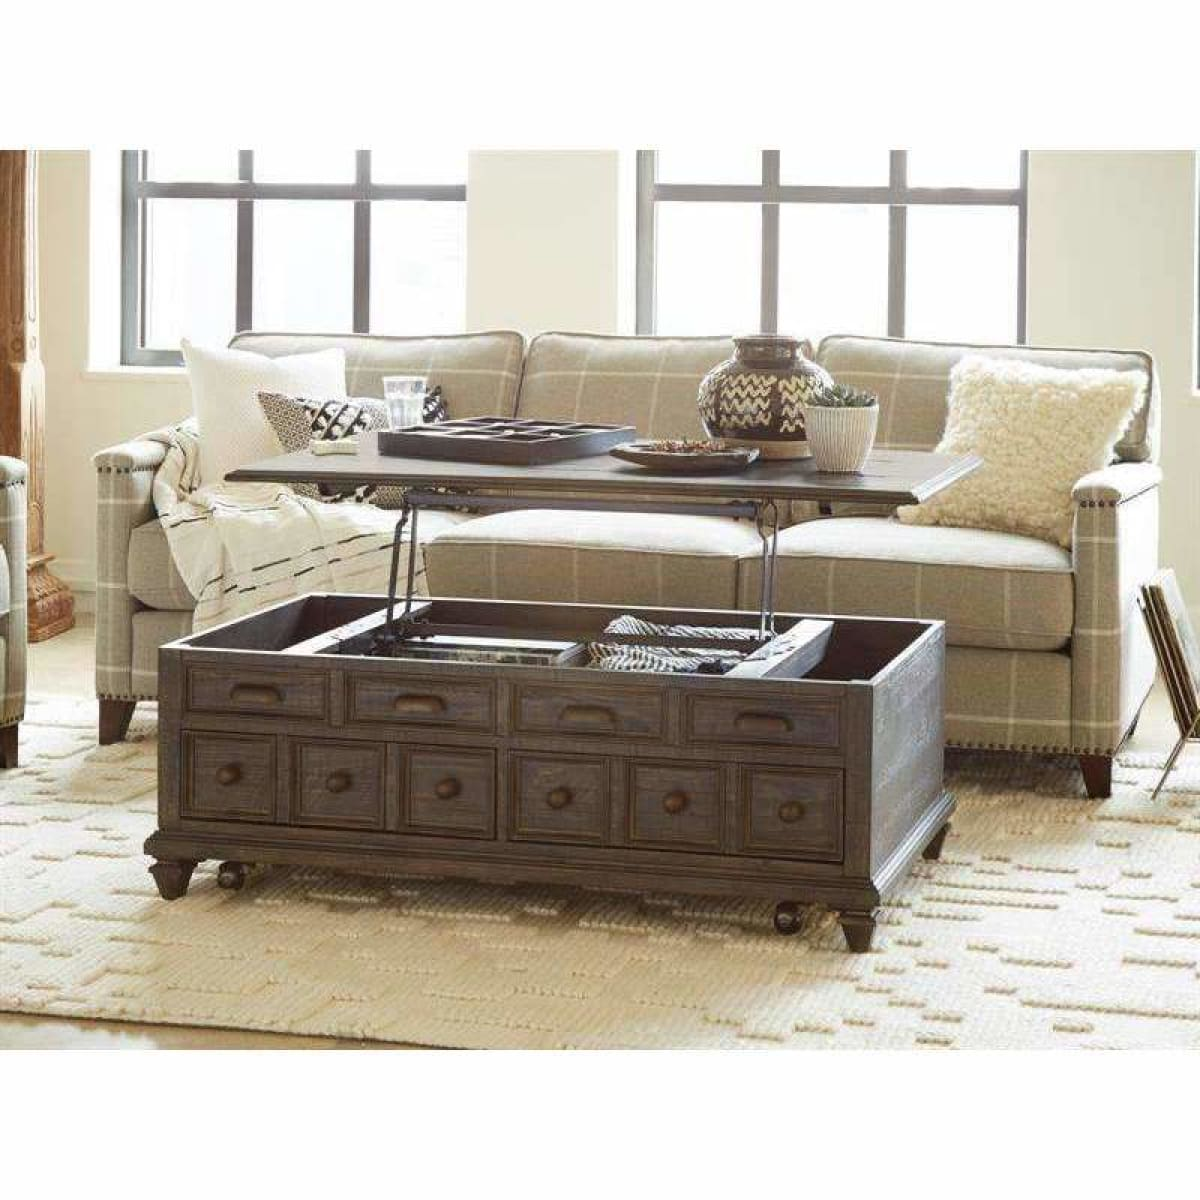 Burkhardt Lift Top Storage Cocktail Table w/Casters - COFFEE TABLE